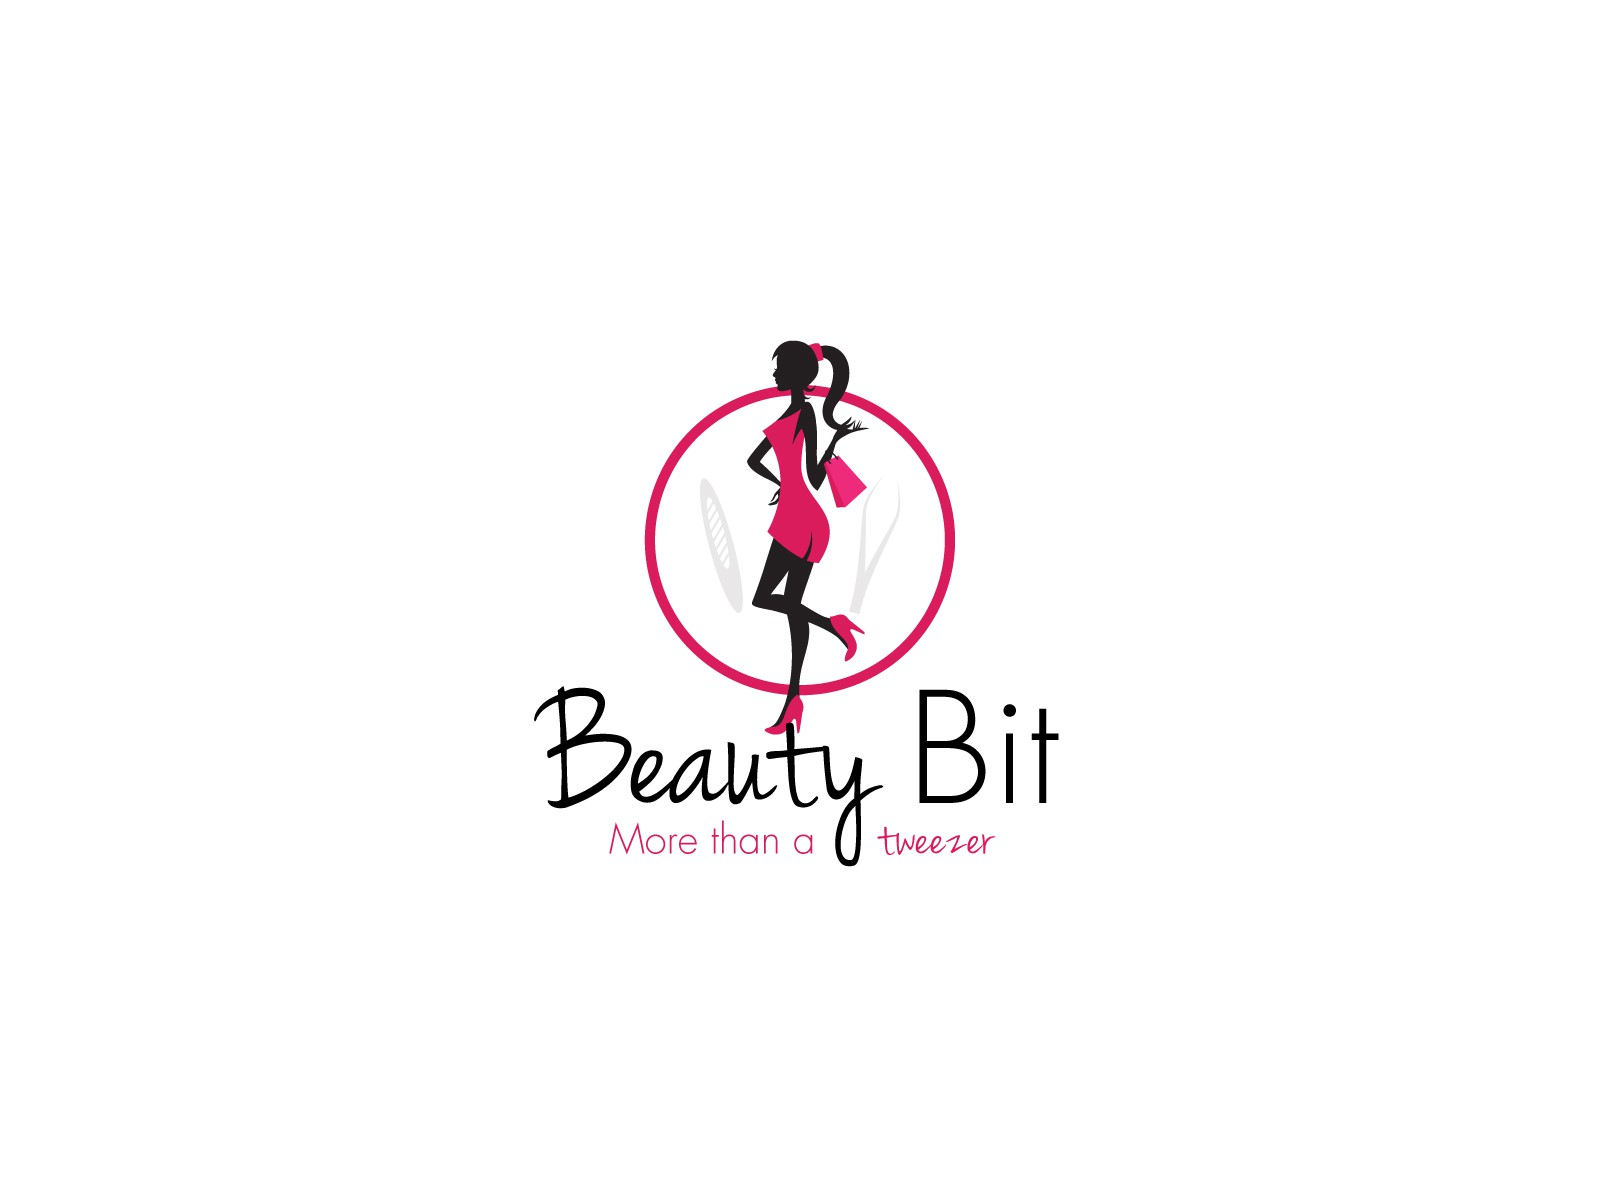 New logo wanted for BeautyBit™